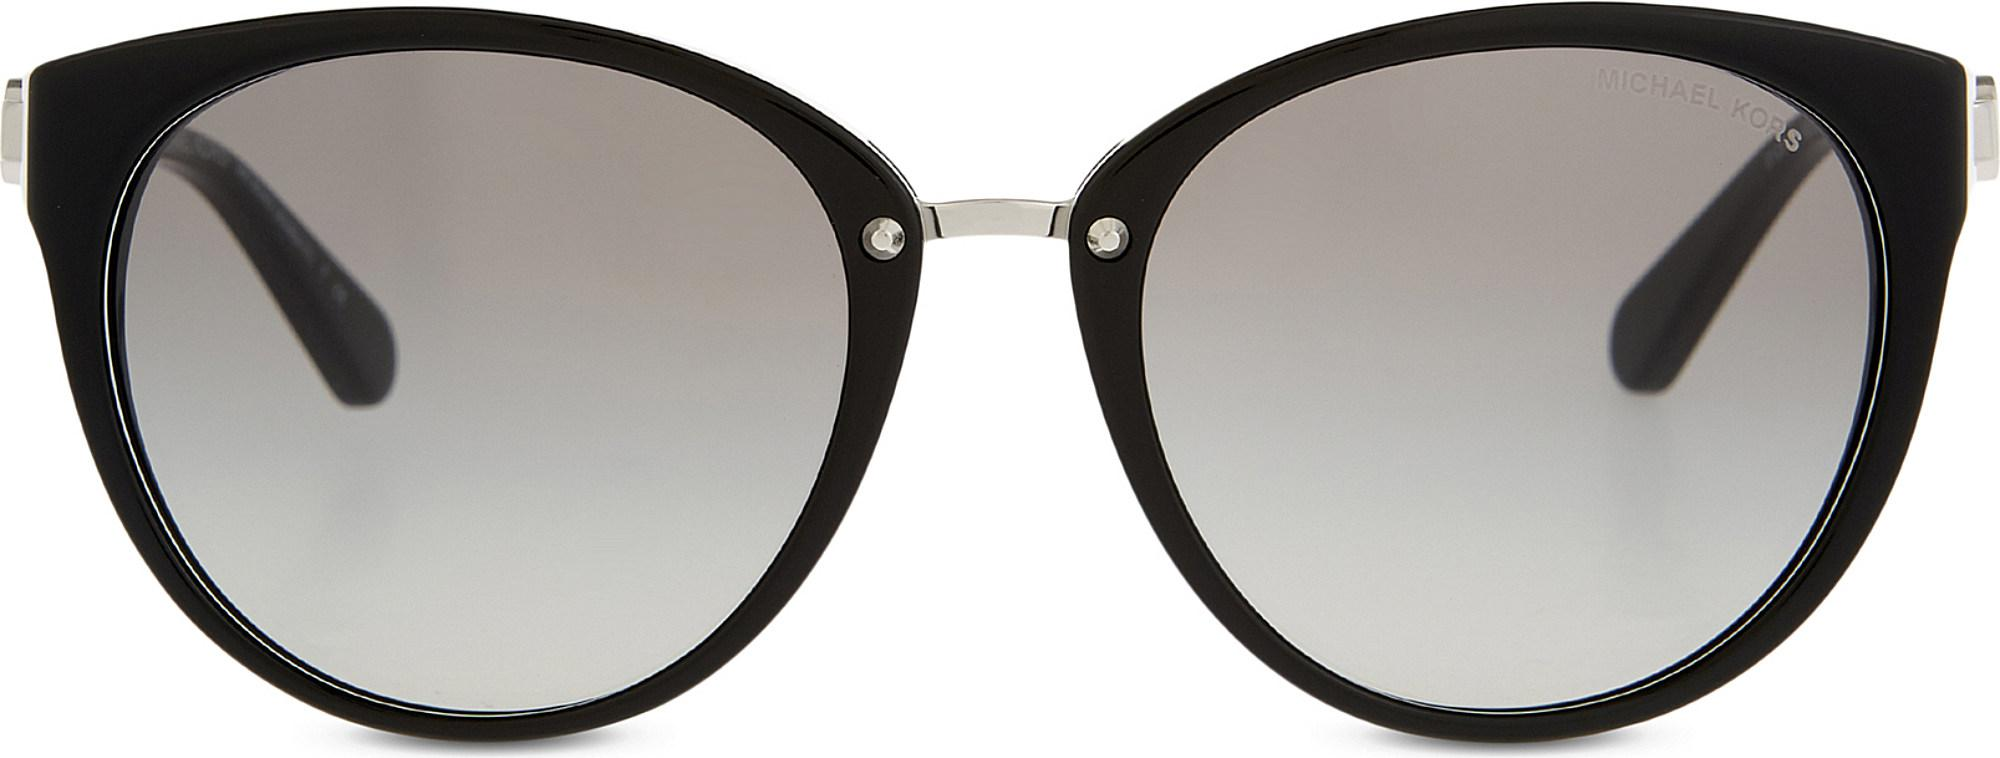 8fbfa9acd5175 Lyst - Michael Kors Mk6039 Abela Iii Cat Eye-frame Sunglasses in Black